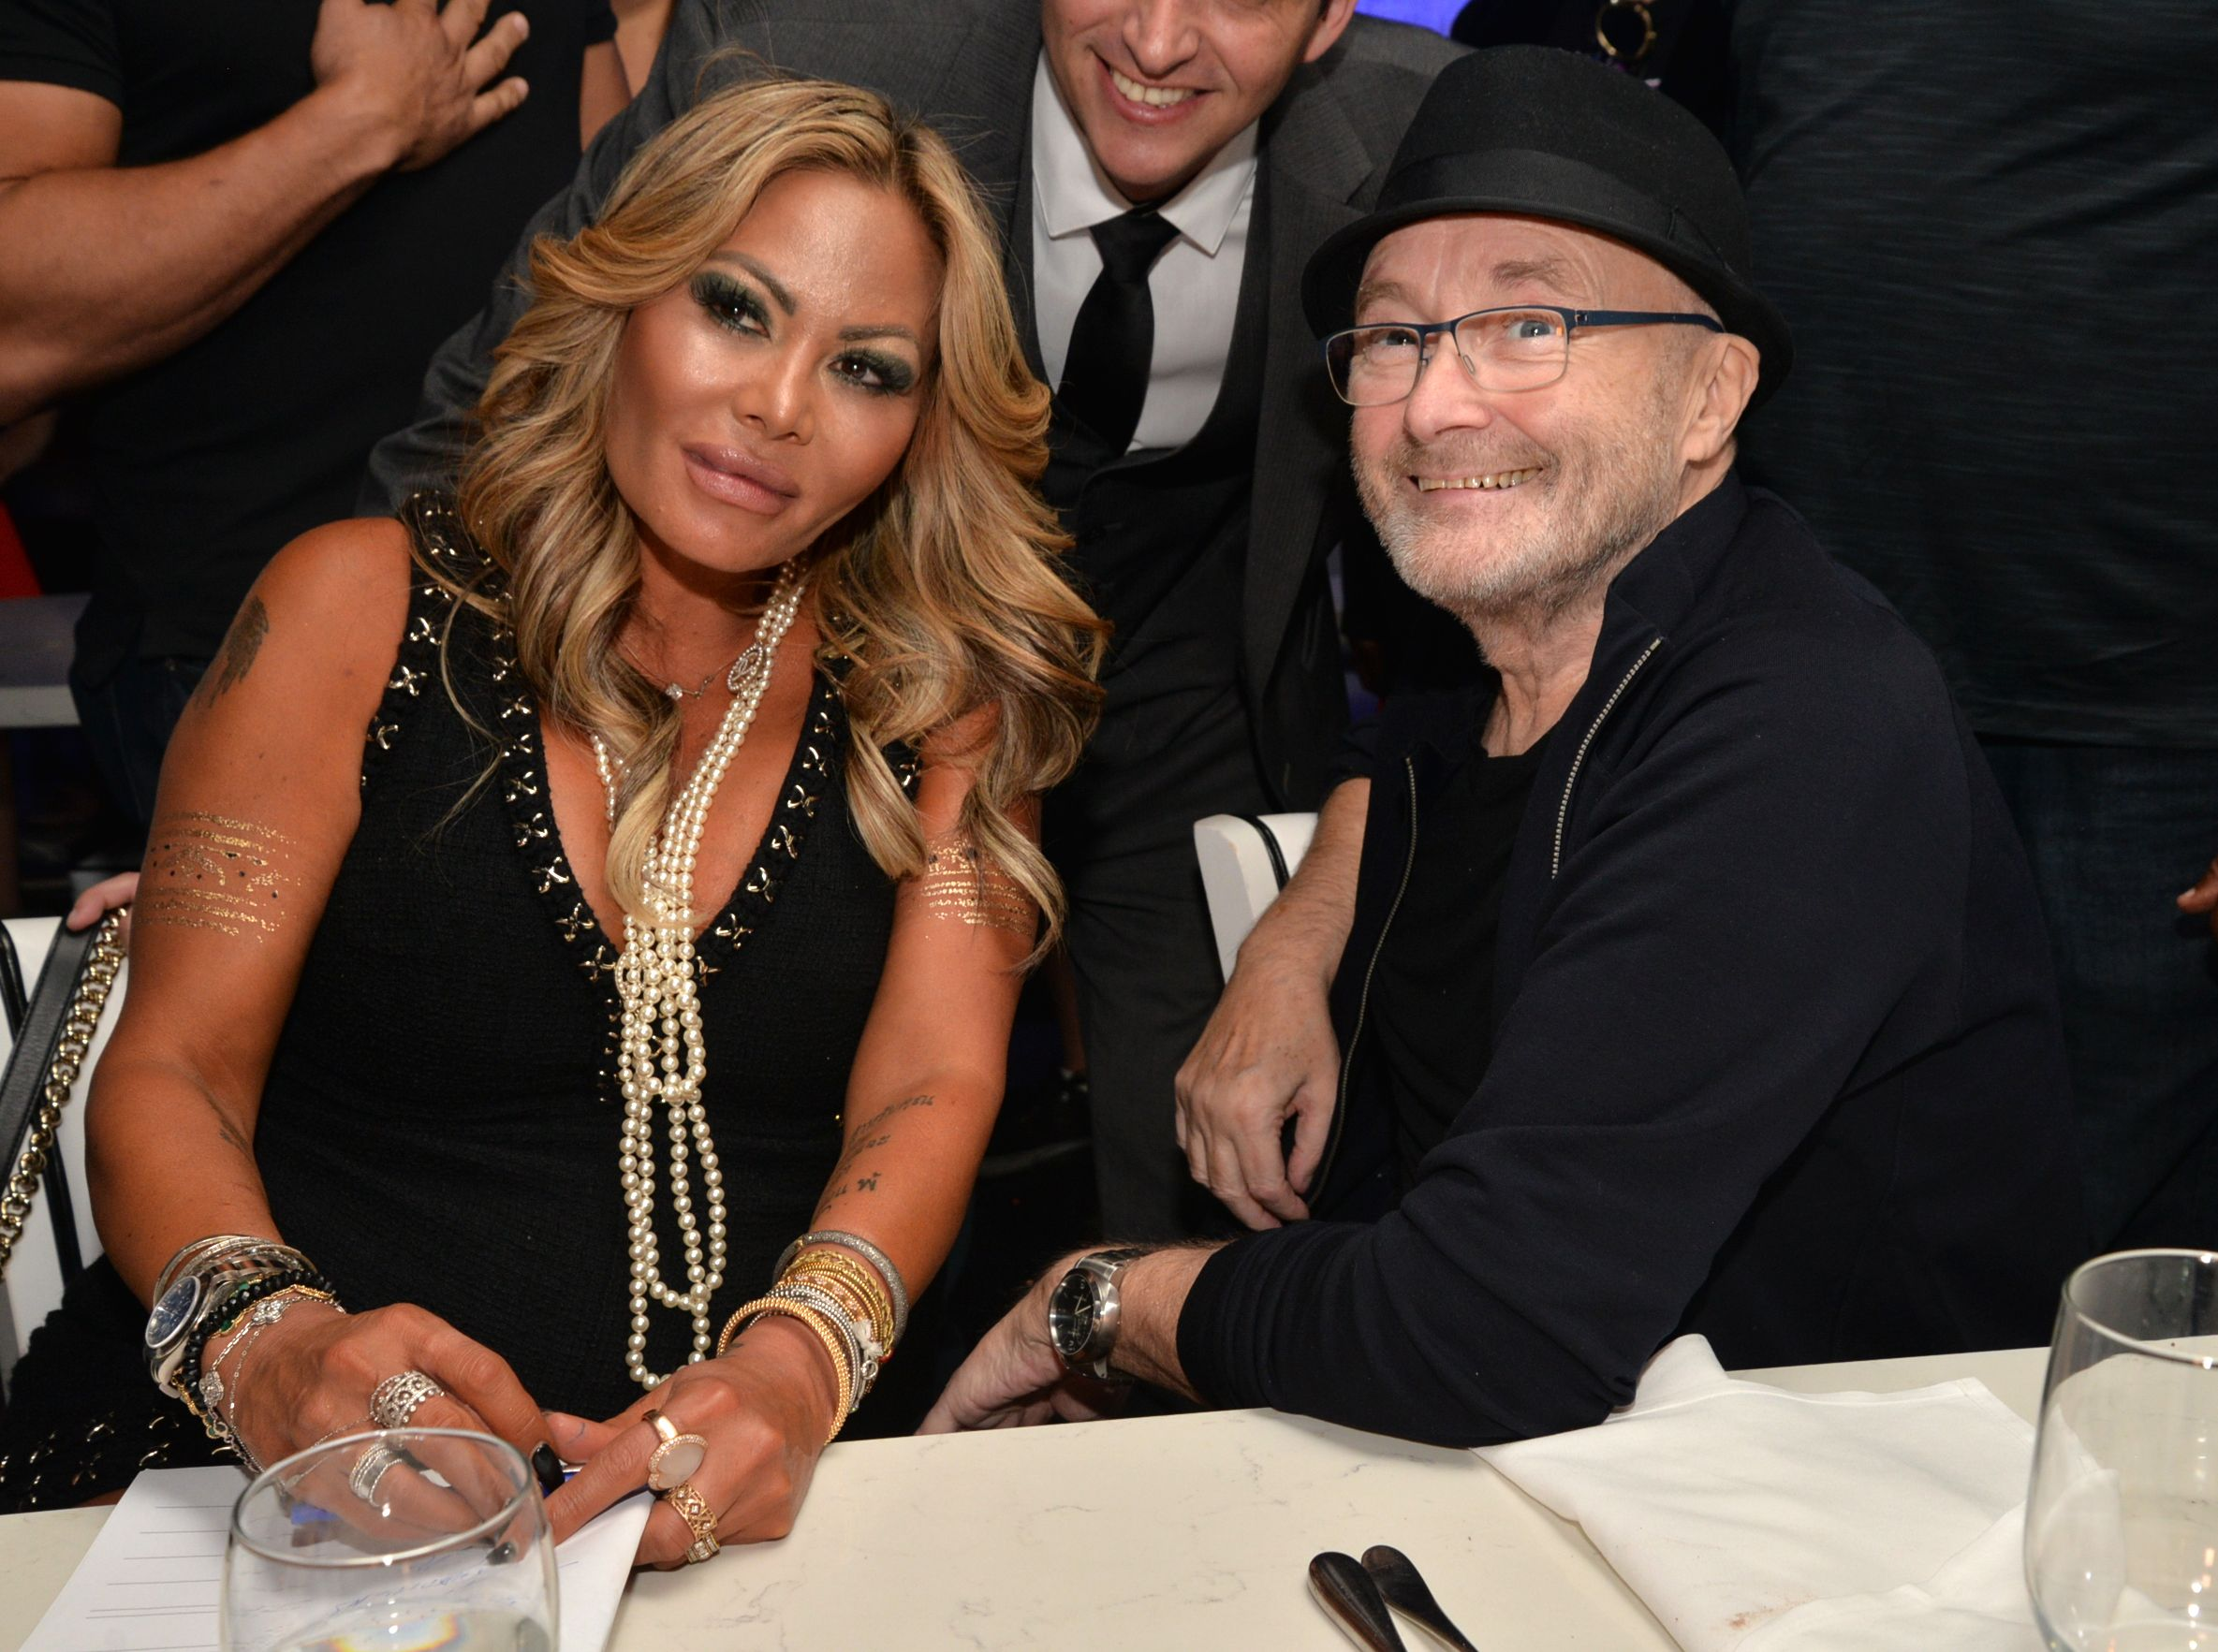 Orianne Cevey and Phil Collins at Little Dreams Foundation Music Auditions in Design District on September 20, 2017 | Photo: Getty Images